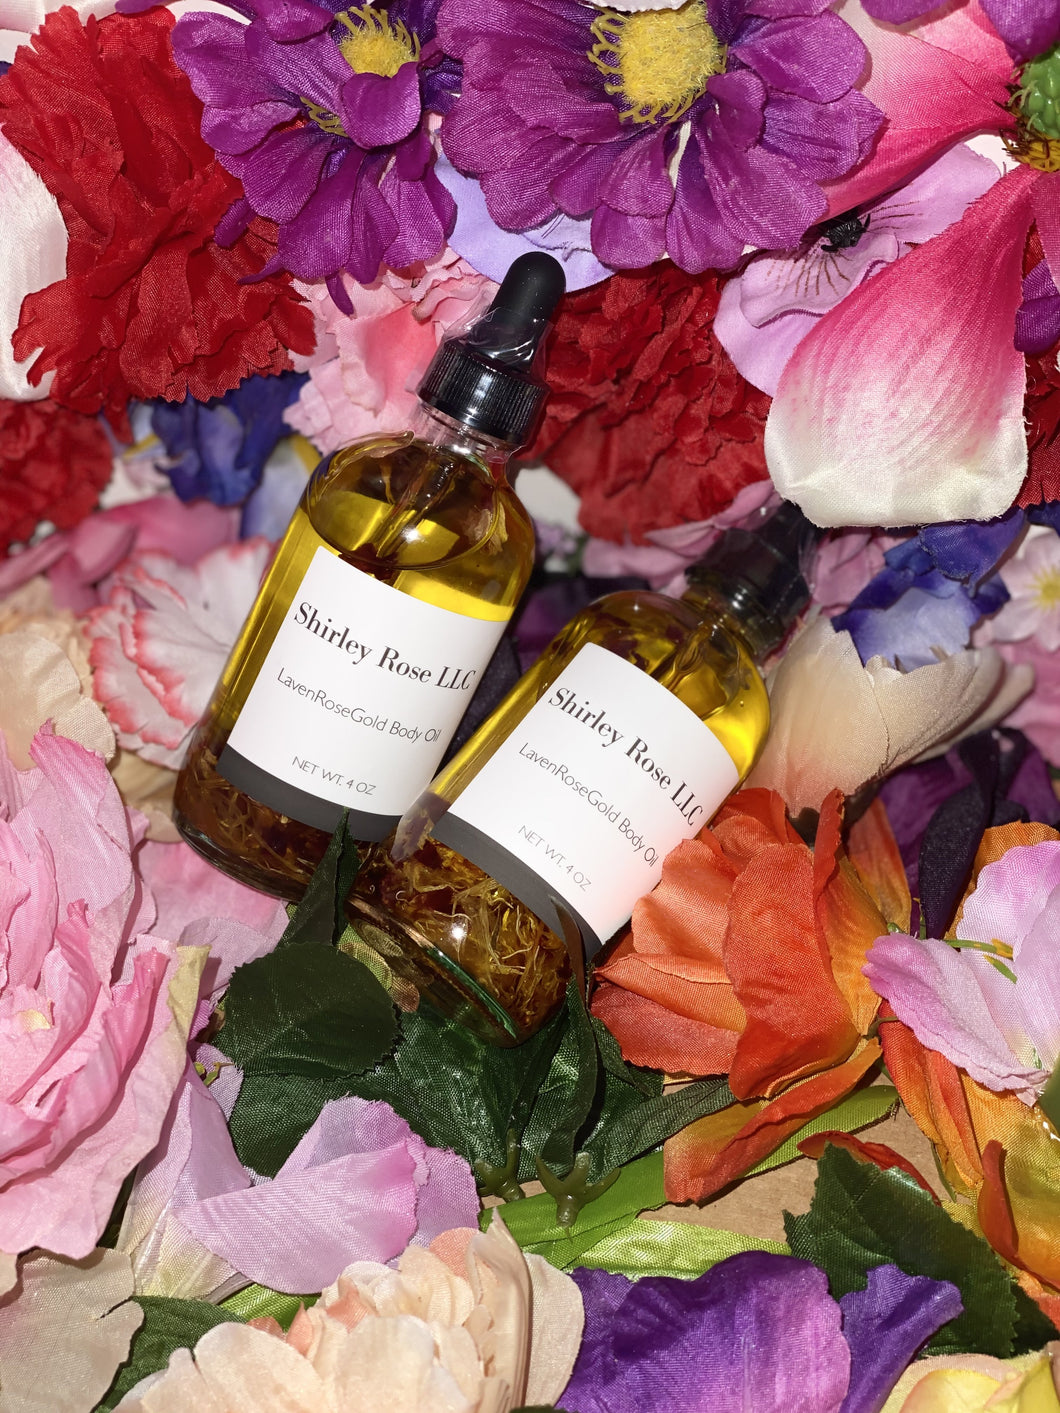 Two 4 oz bottles filled with nourishing oils to soothe the body.